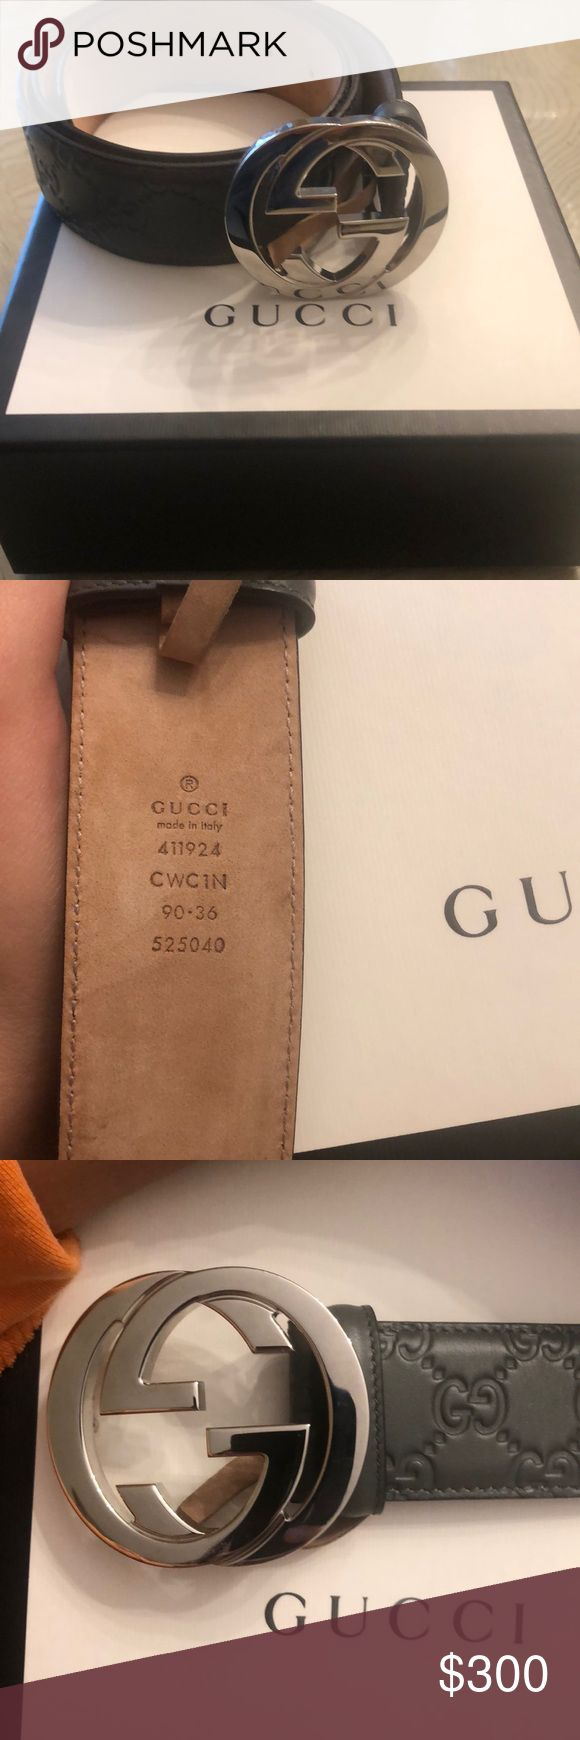 Authentic Men's Gucci belt Authentic men's Gucci belt Size 36 ( in Gucci ) 32-34 in US charcoal grey color  in great condition worn once Gucci Accessories Belts